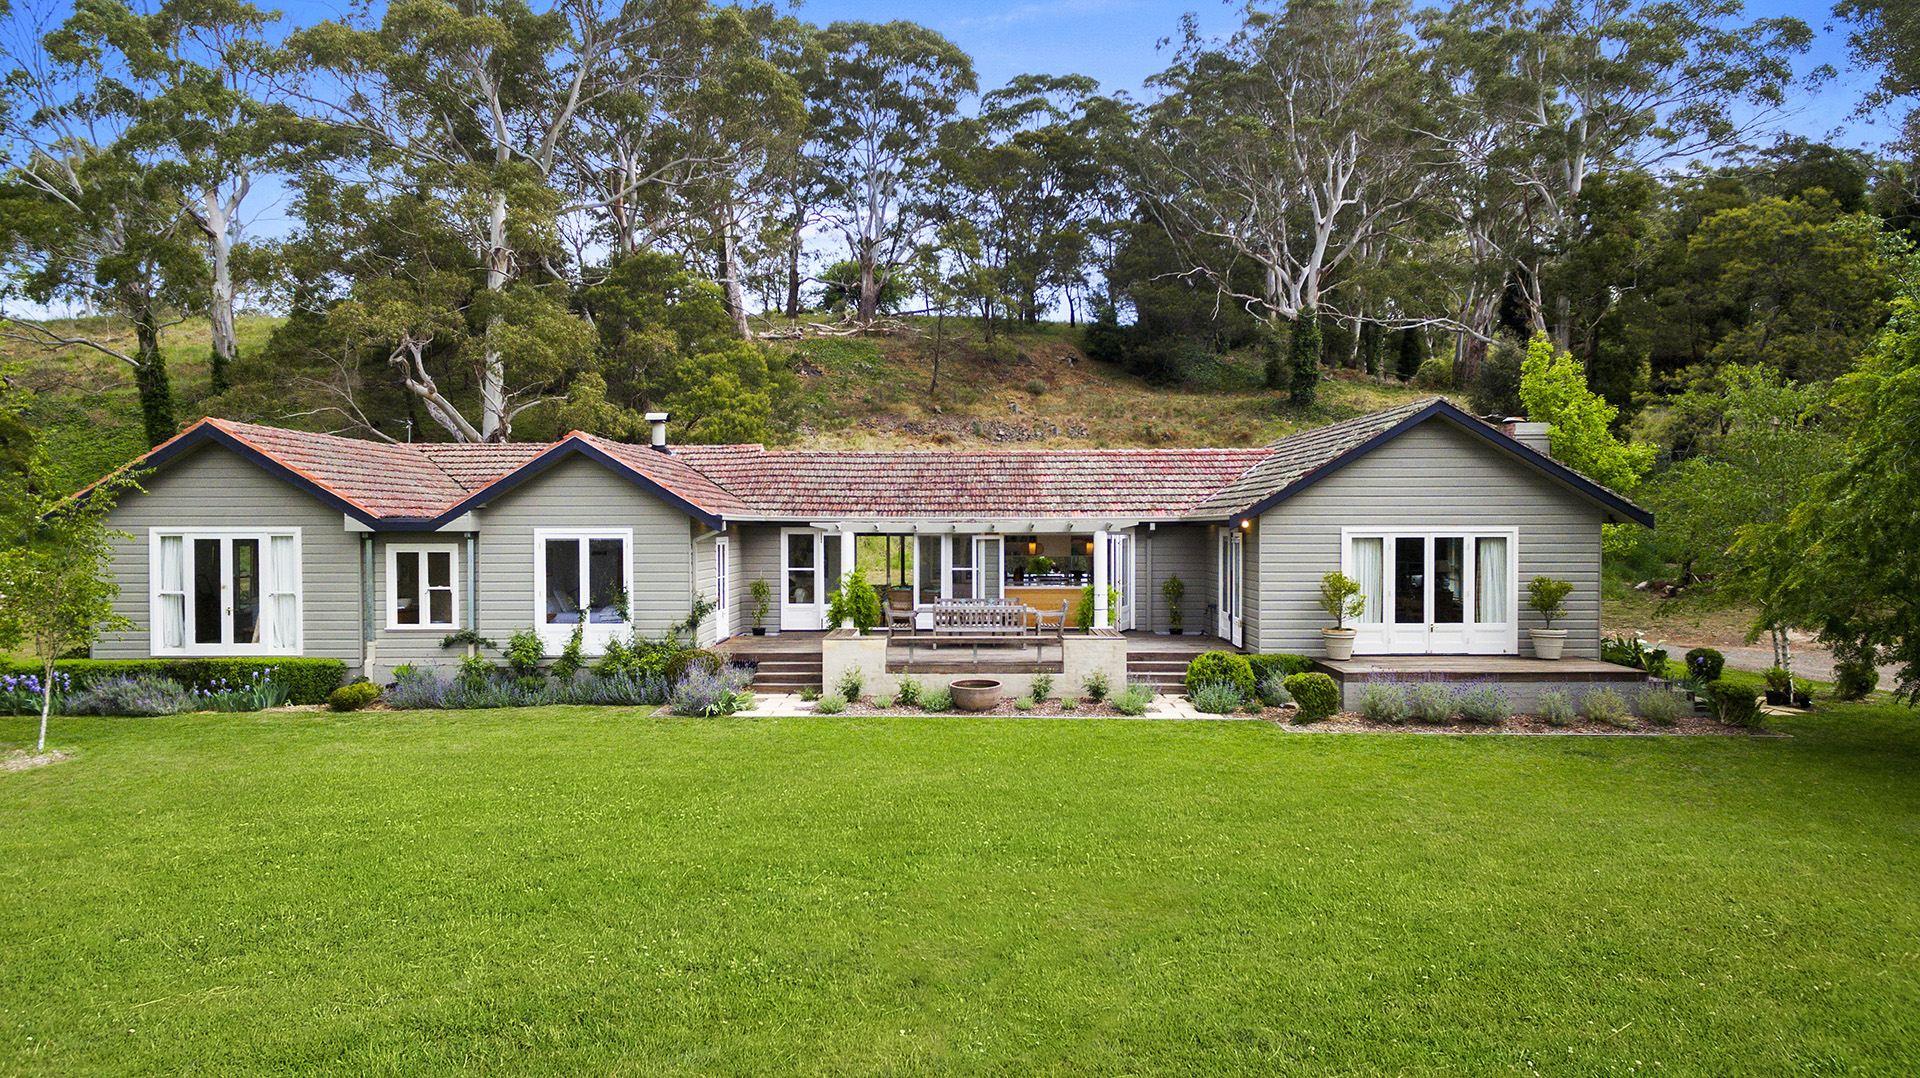 27 hopewood road bowral nsw 2576 house for sale for Rural home designs nsw